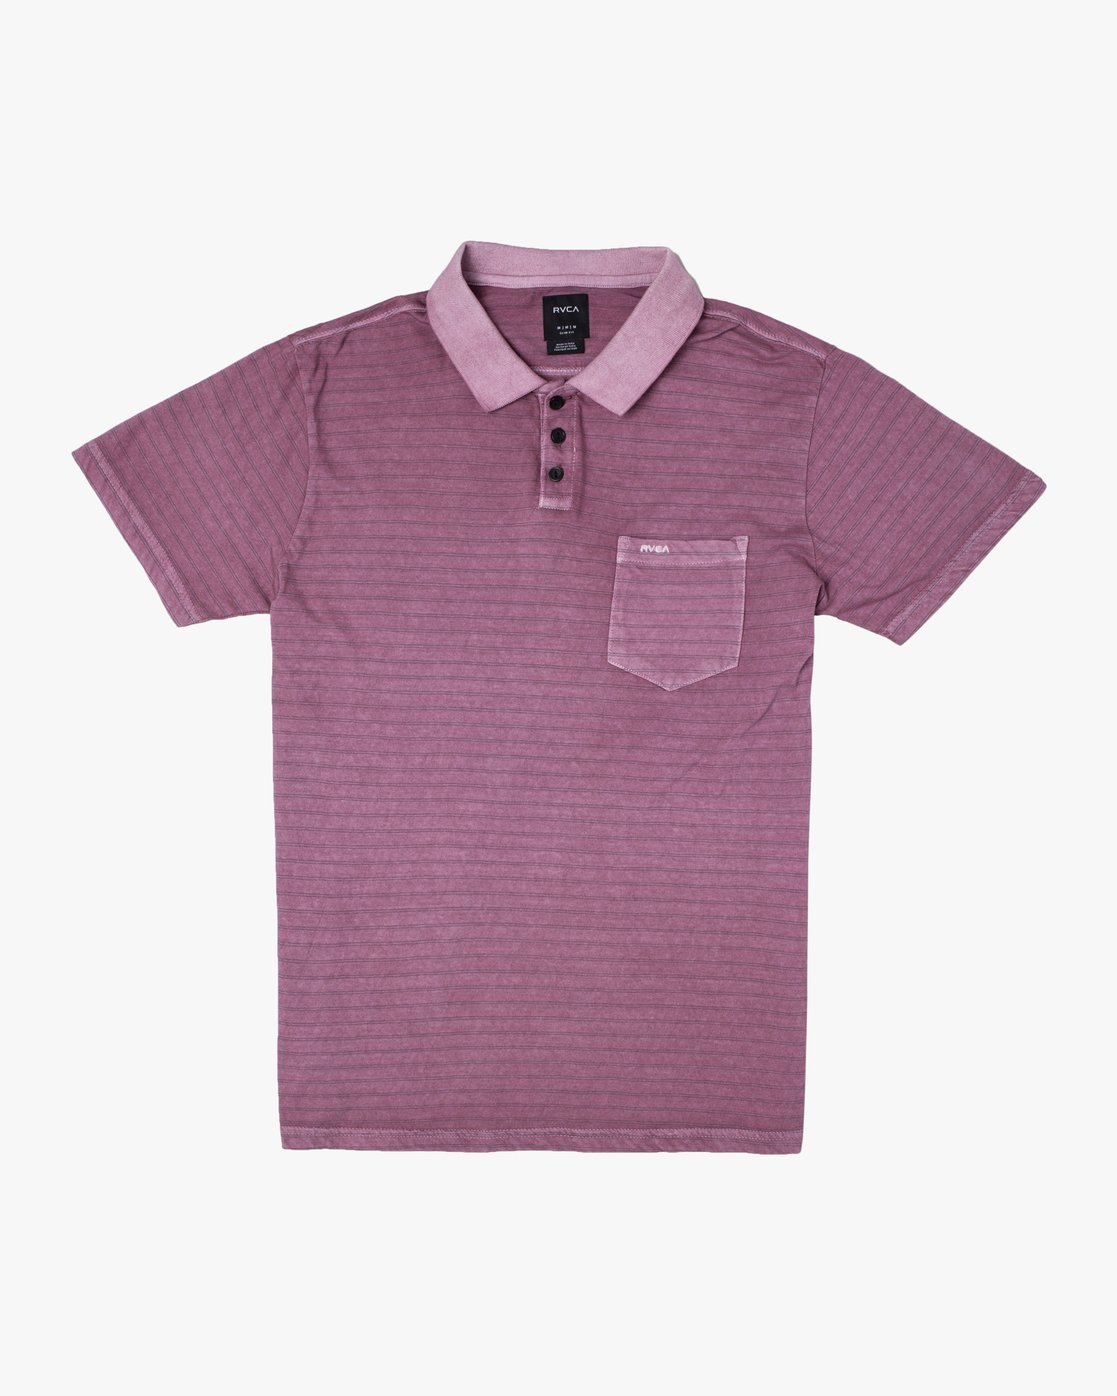 0 PTC STRIPE POLO SHORT SLEEVE SHIRT Purple M9092RPS RVCA